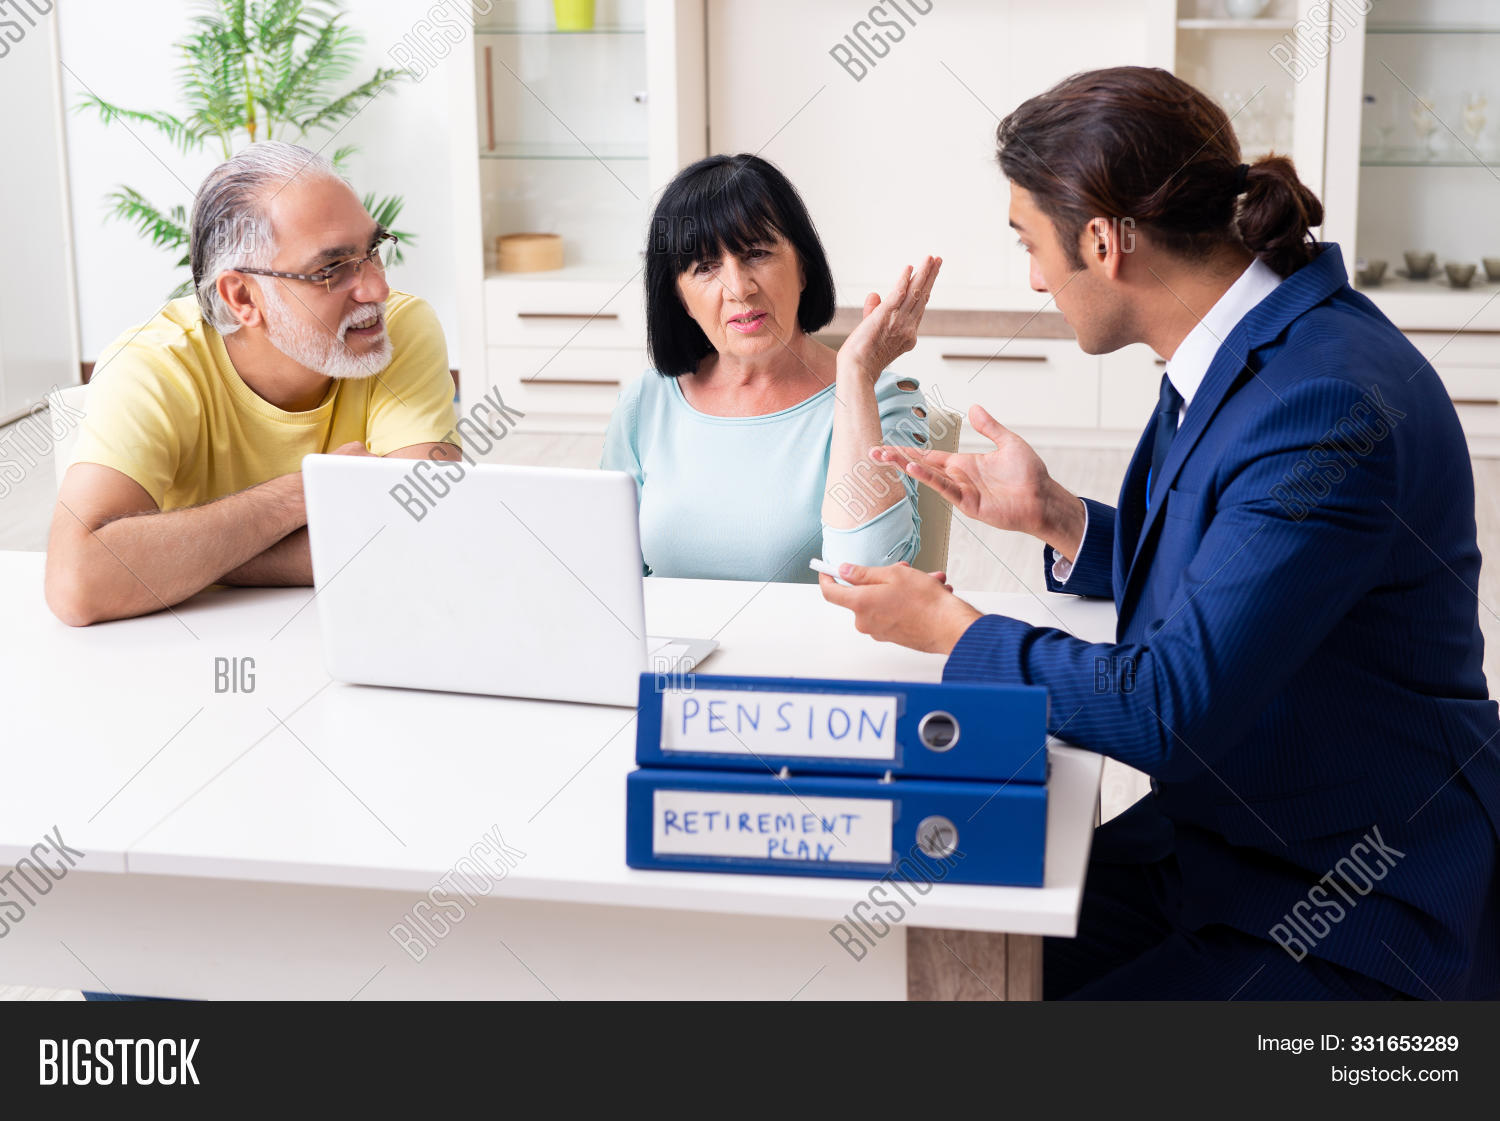 Financial advisor giving retirement advice to old couple